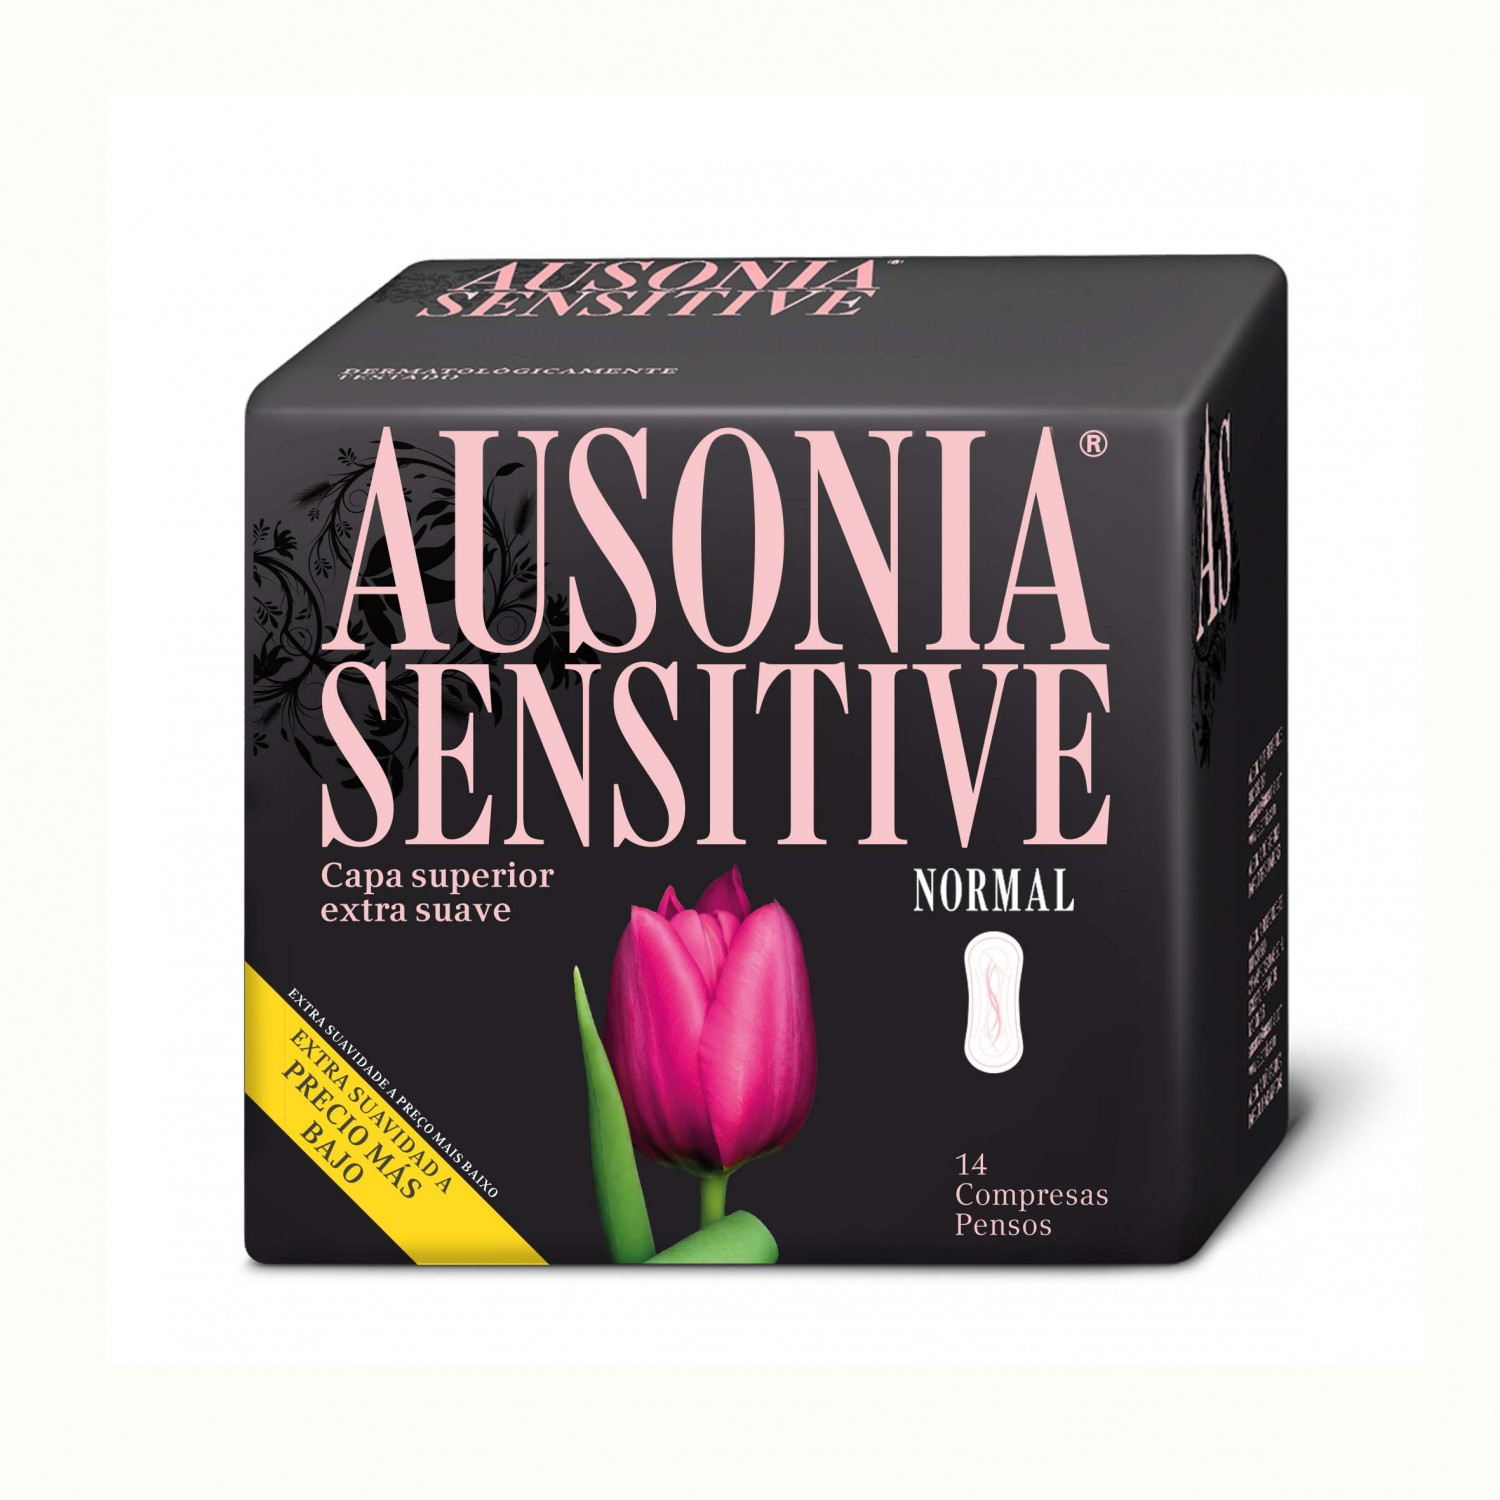 Ausonia compresa sensitive normal sin alas por 14 unidades en bolsa